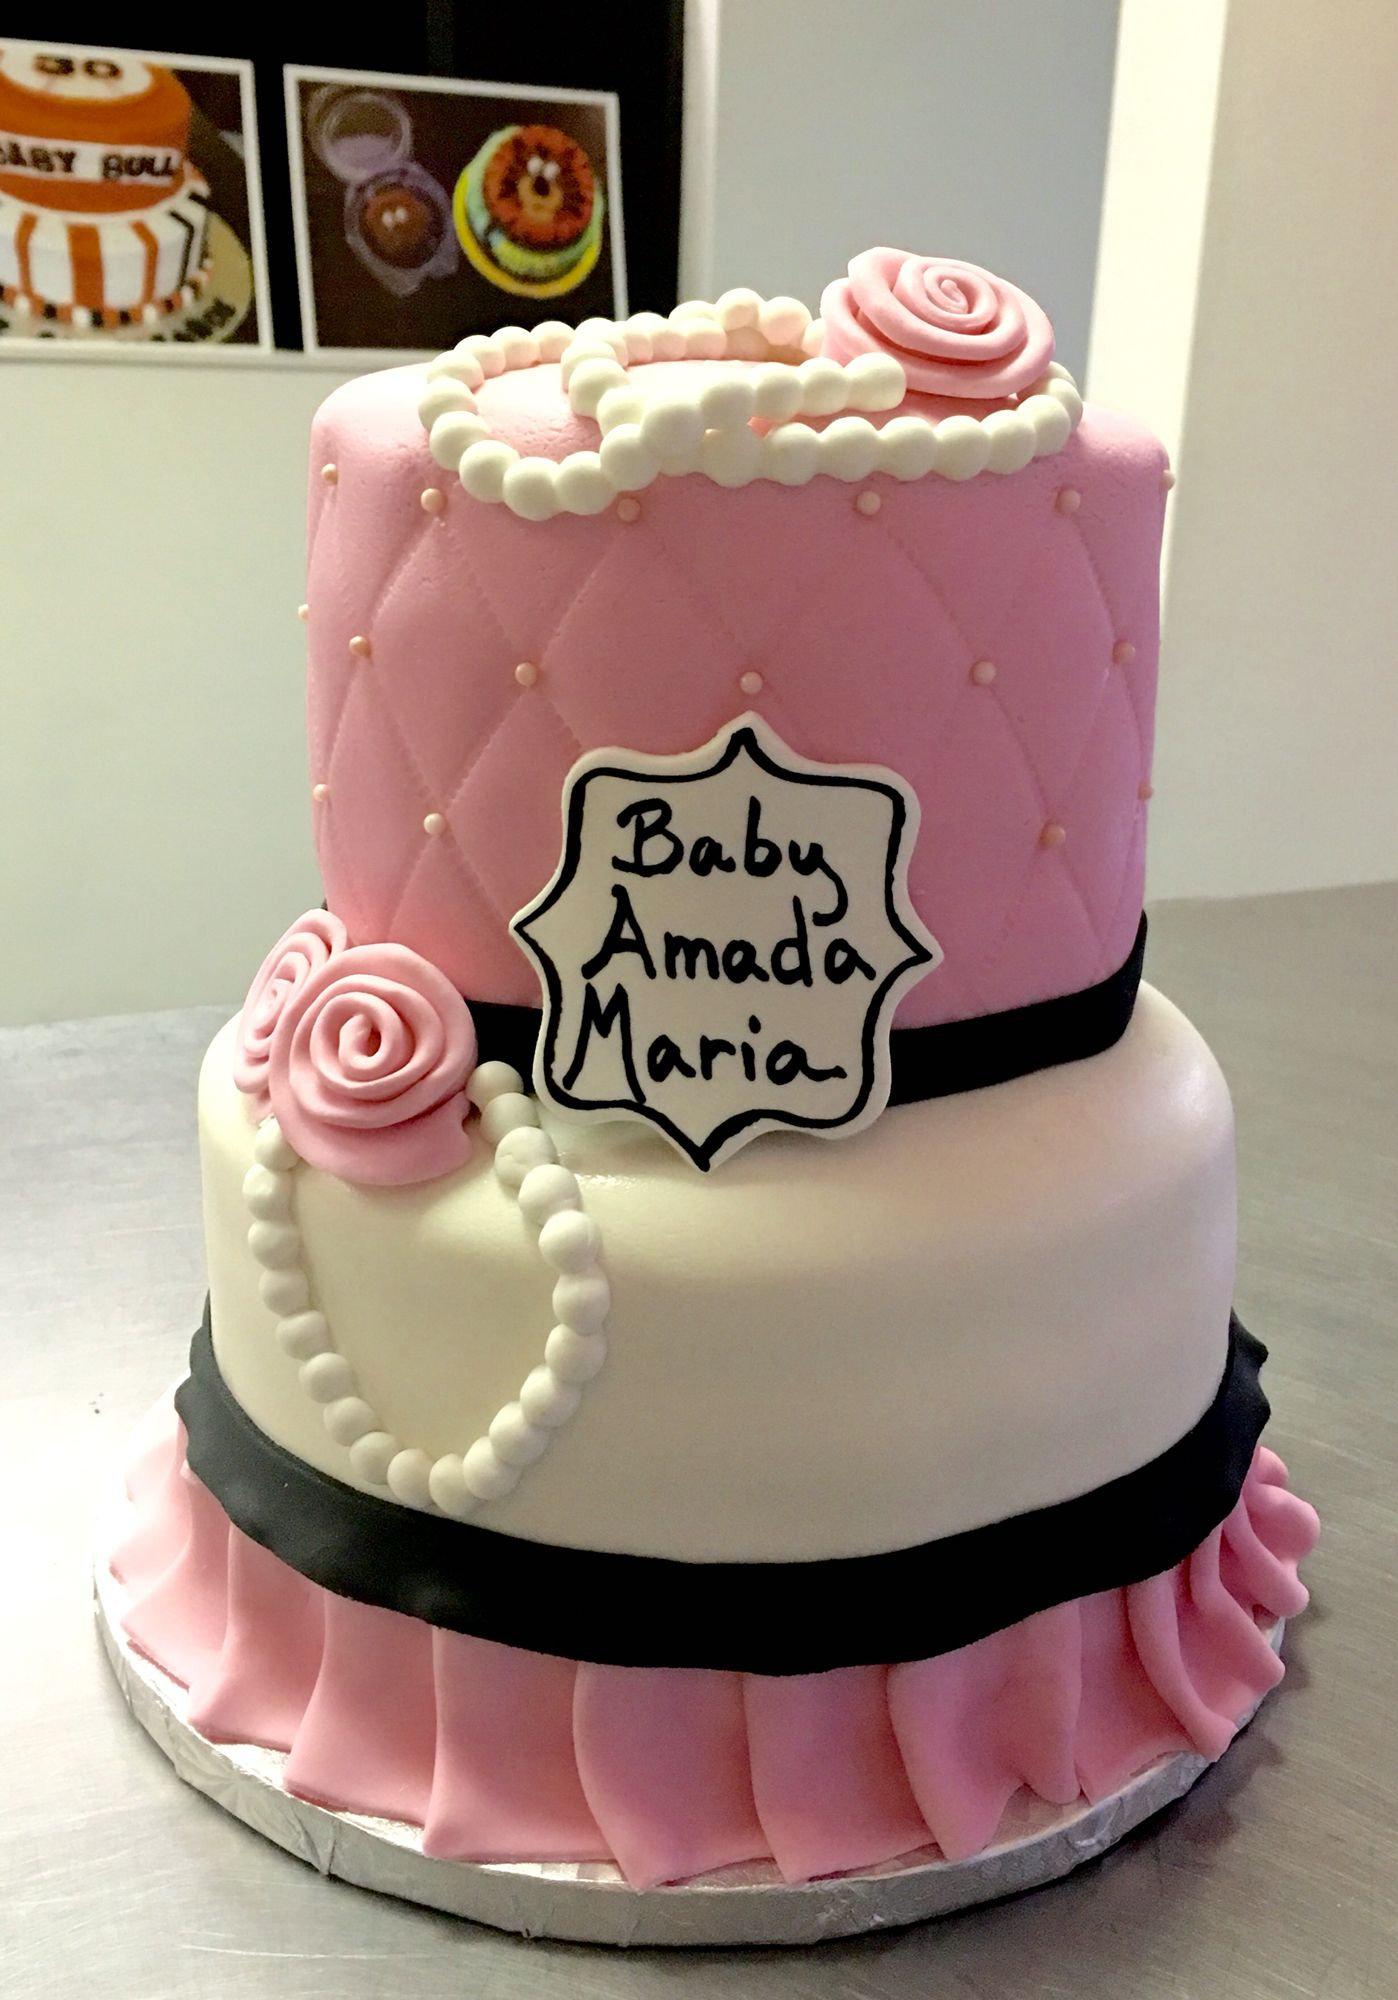 Paris Themed Cake For Baby Shower Bridal Shower Or Birthday By The